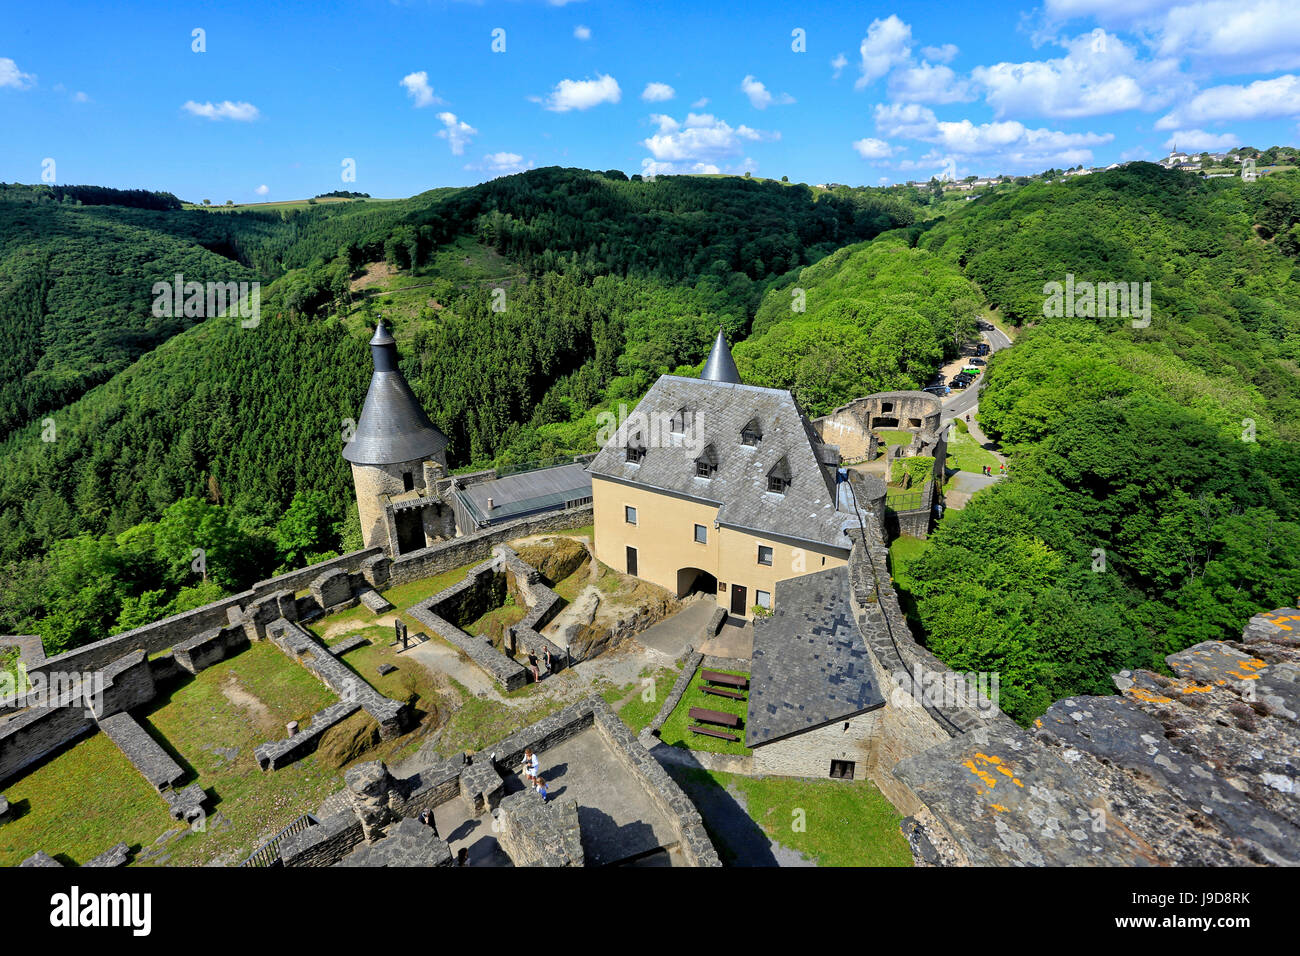 Bourscheid Castle in the Valley of Sauer River, Canton of Diekirch, Grand Duchy of Luxembourg, Europe - Stock Image